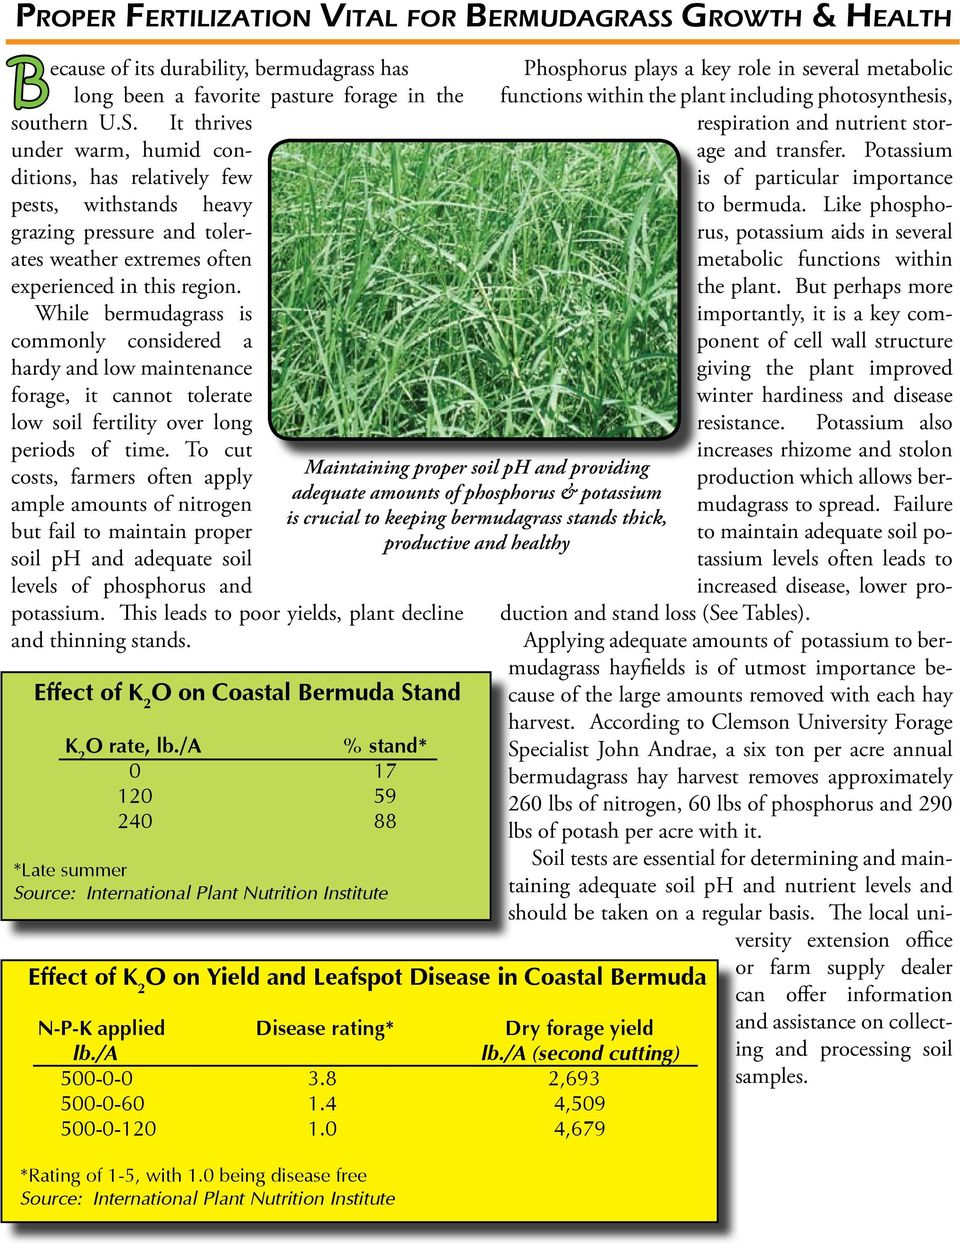 While bermudagrass is commonly considered a hardy and low maintenance forage, it cannot tolerate low soil fertility over long periods of time.